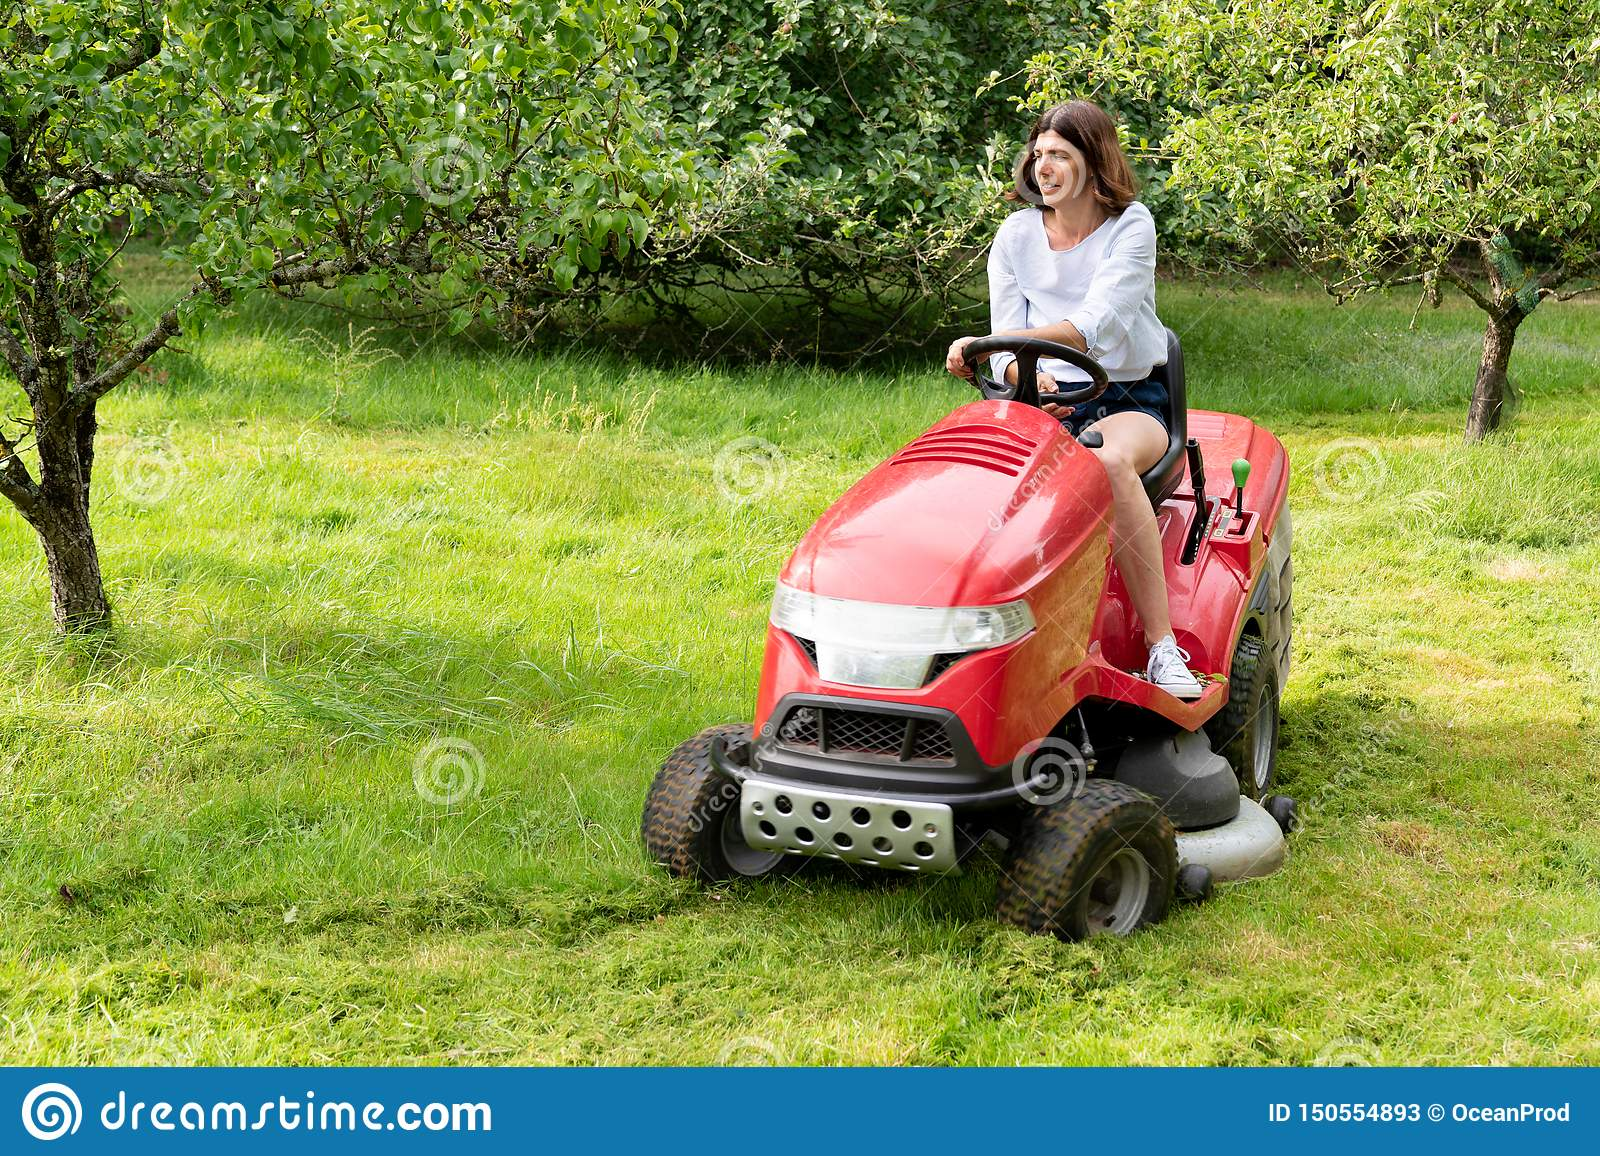 Senior Woman On A Lawn Mower Stock Photo - Download Image